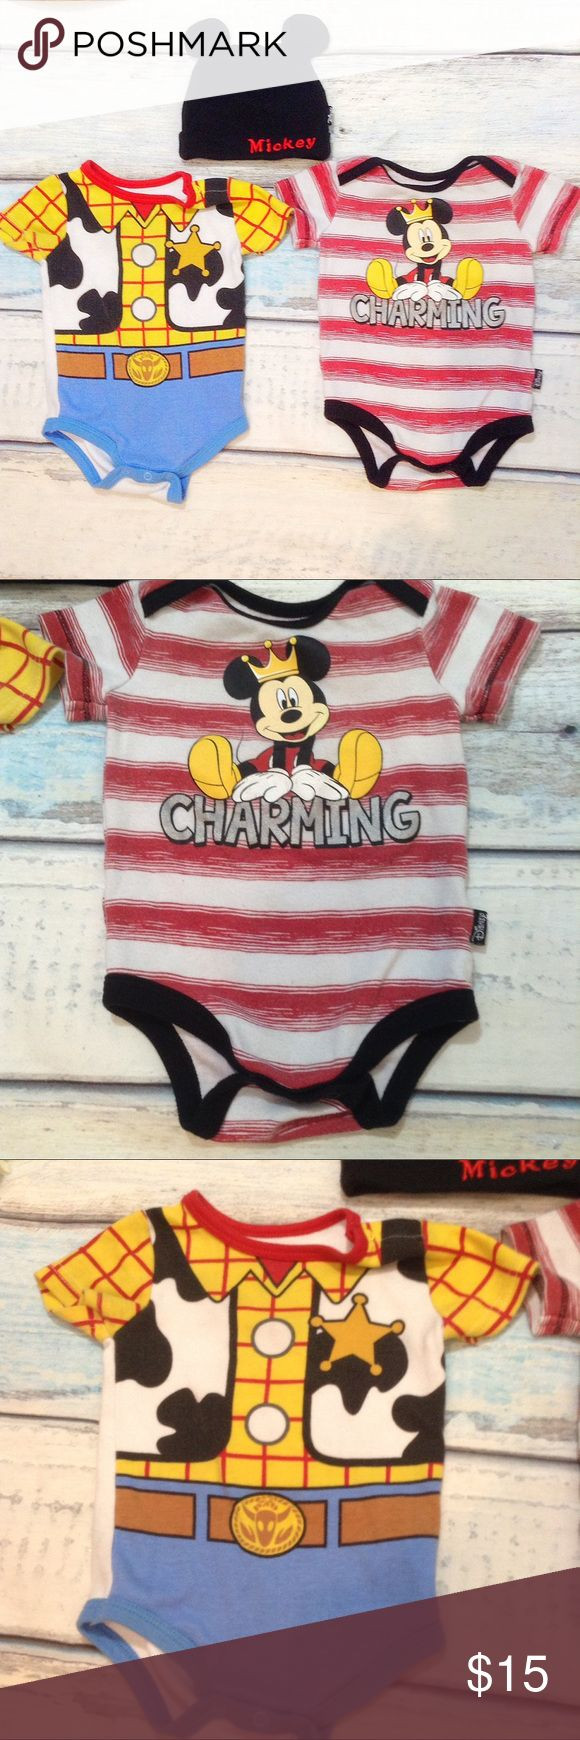 DISNEY BABY Mickey Mouse & Toy Story Onesie Bundle Disney Baby onesie and hat bundle. One Mickey Mouse Prince Charming striped onesie and one toy story sheriff woody onesie bodysuit and one black Mickey Mouse ears Mickey embroidered hat. Some piling on onesies. Both size 3/6 month and the hat is one size. Smoke free home. I do discount bundles. Disney One Pieces Bodysuits